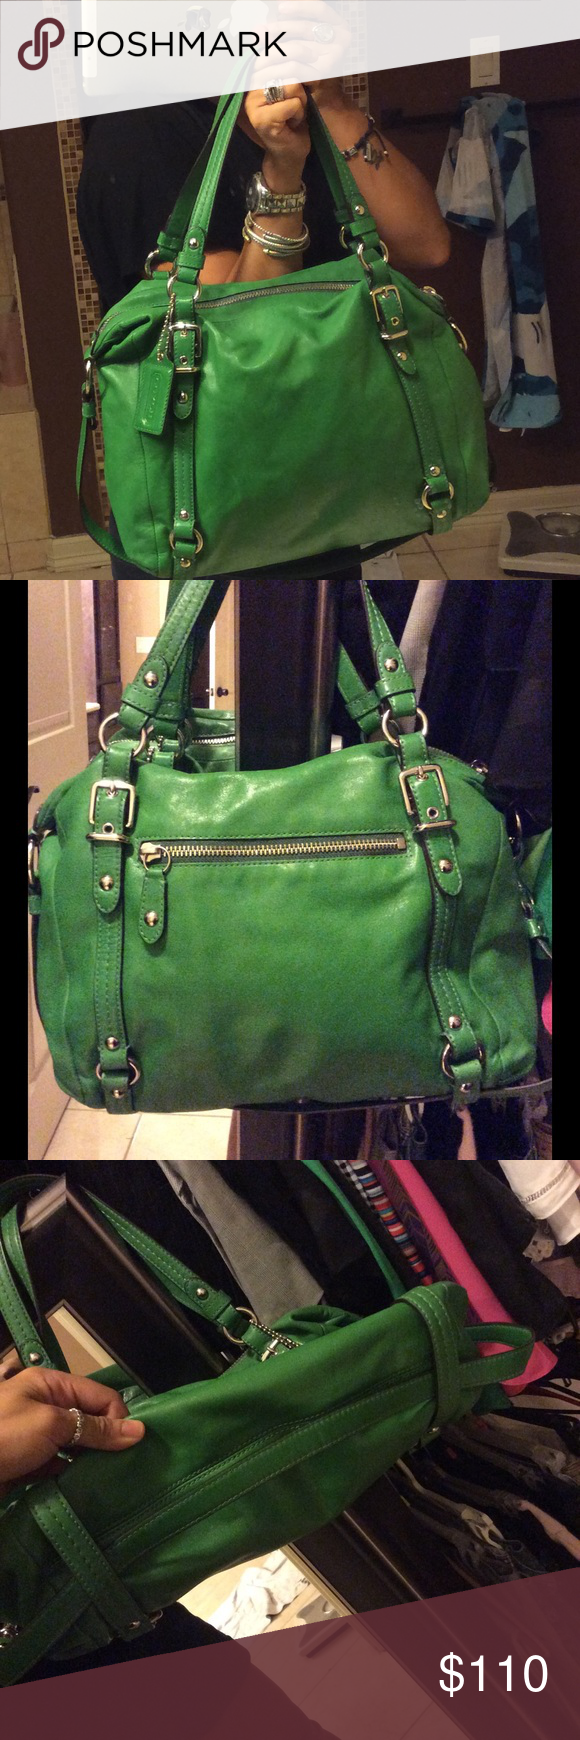 Apple Green Coach Leather Handbag Gently Used Apple Green Leather Zippered Handbag. Comes with Cross Body Strap as Well. Coach Bags Satchels